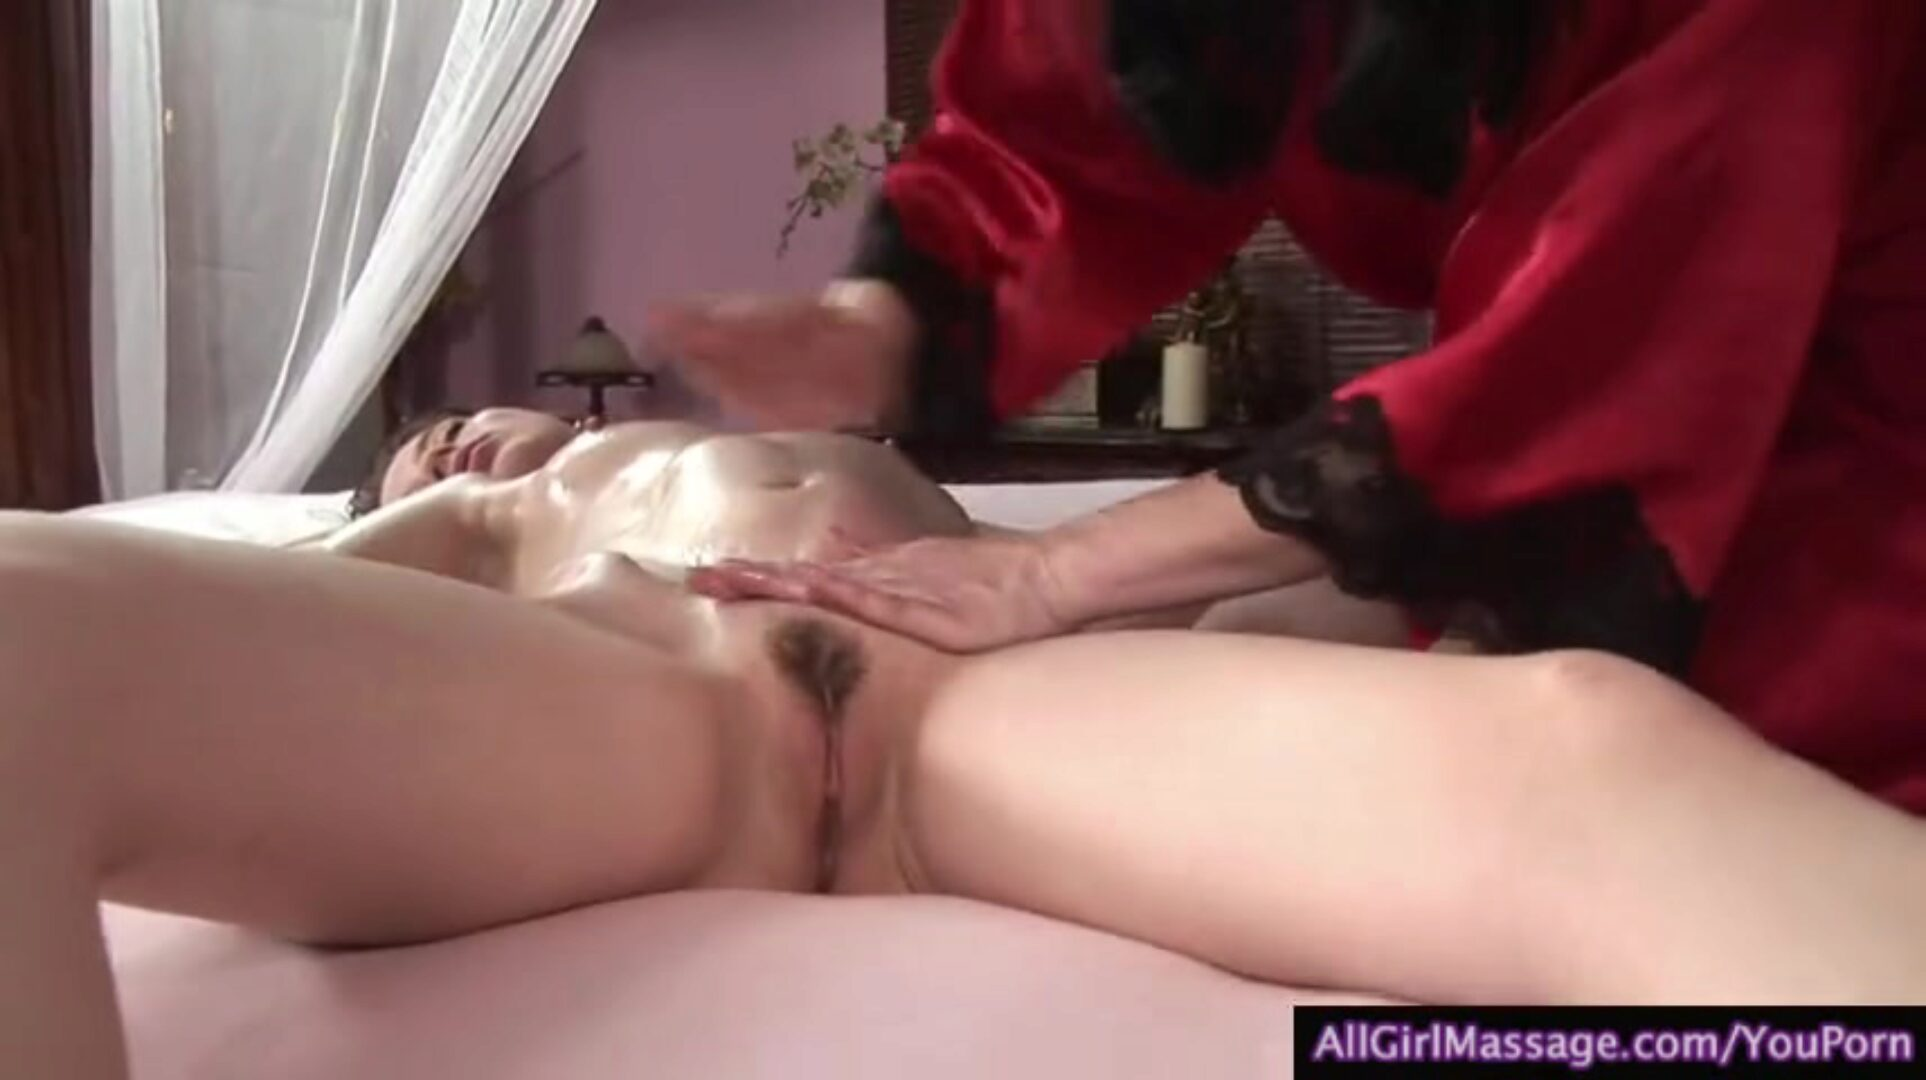 Hot mother I'd like to fuck takes advantage of a cheerleader